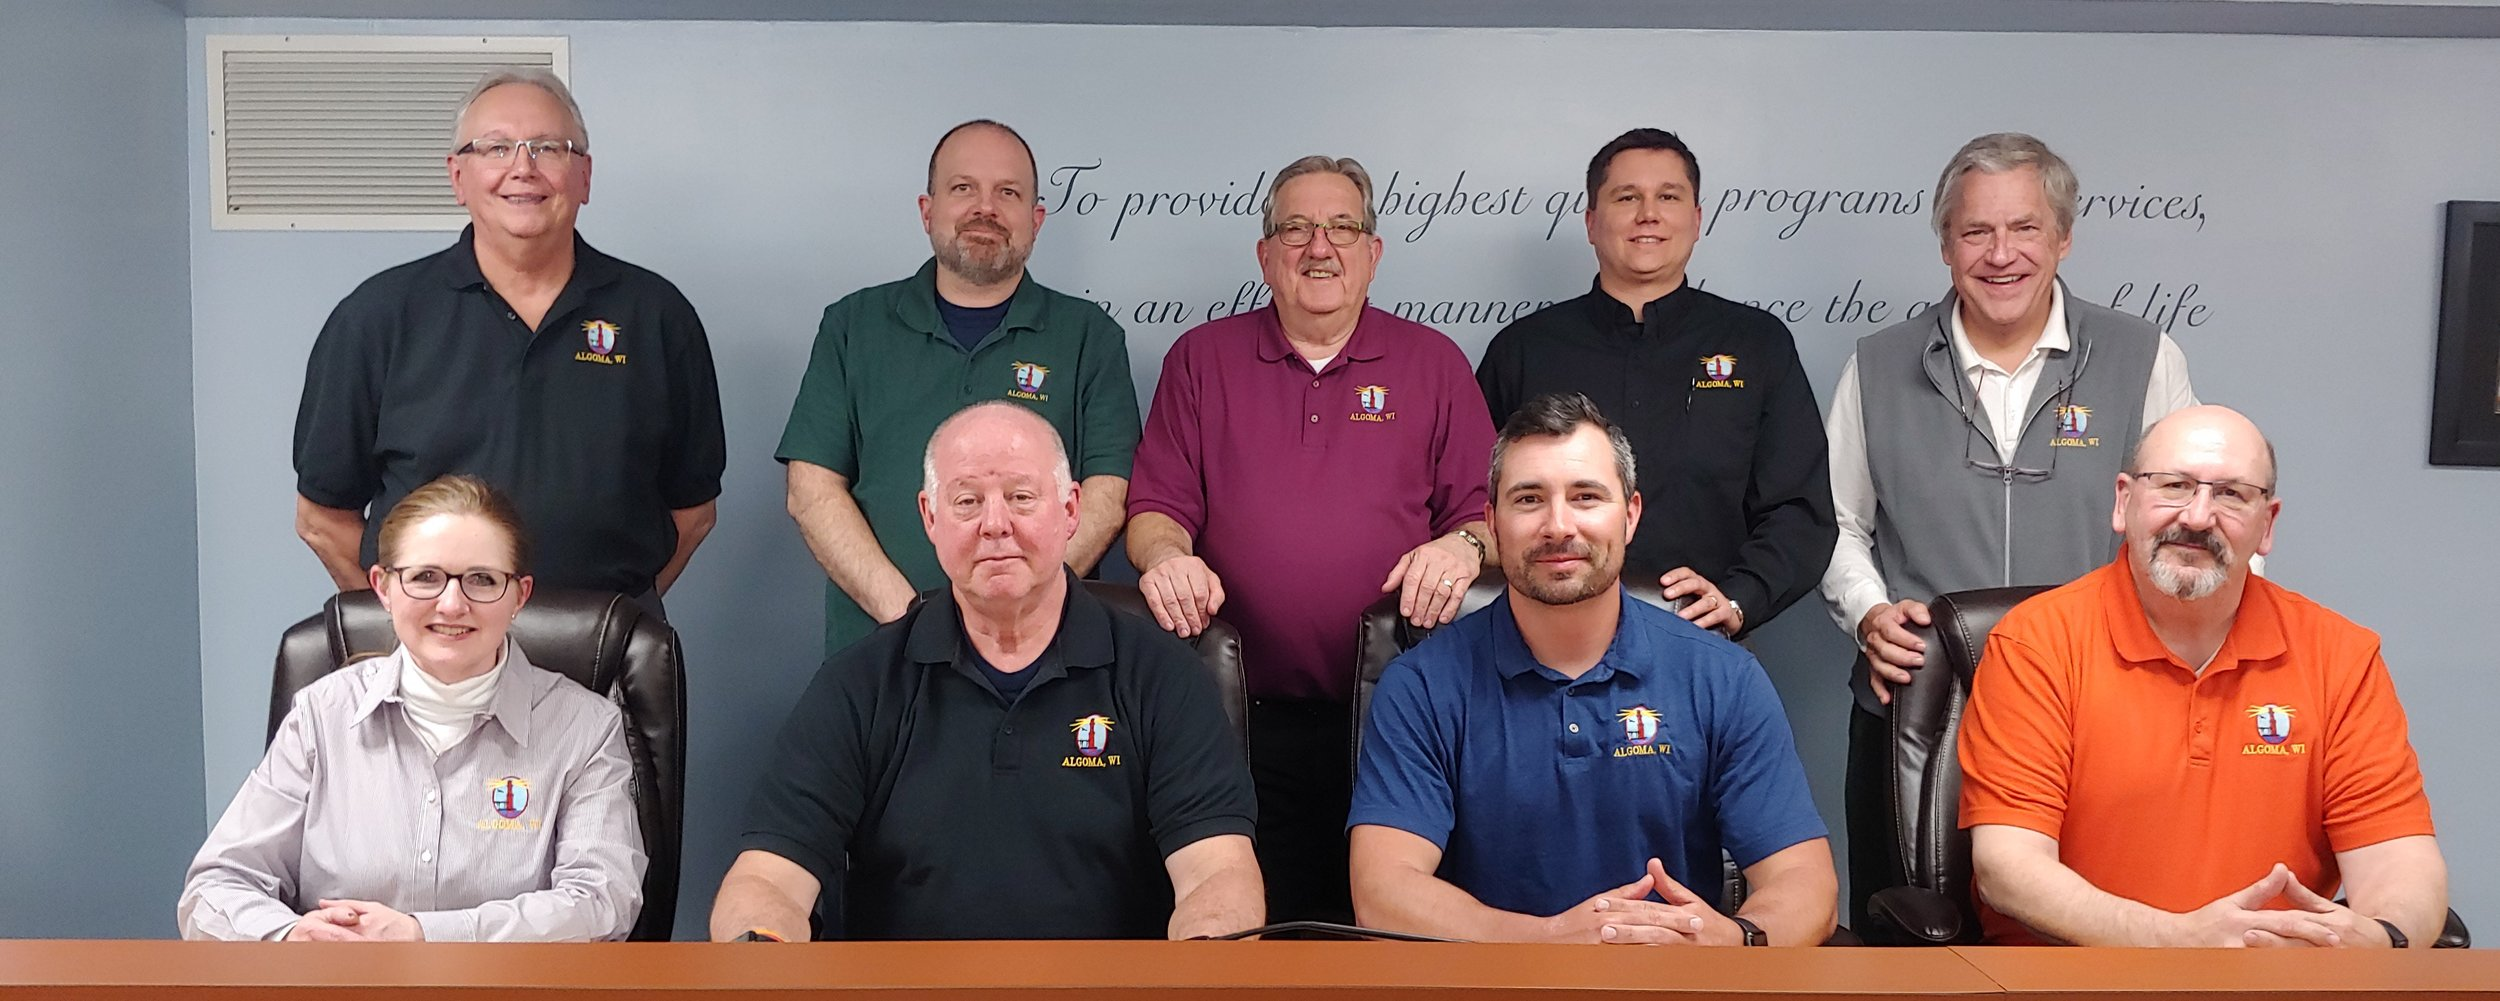 2018-2019 Council Picture.jpg